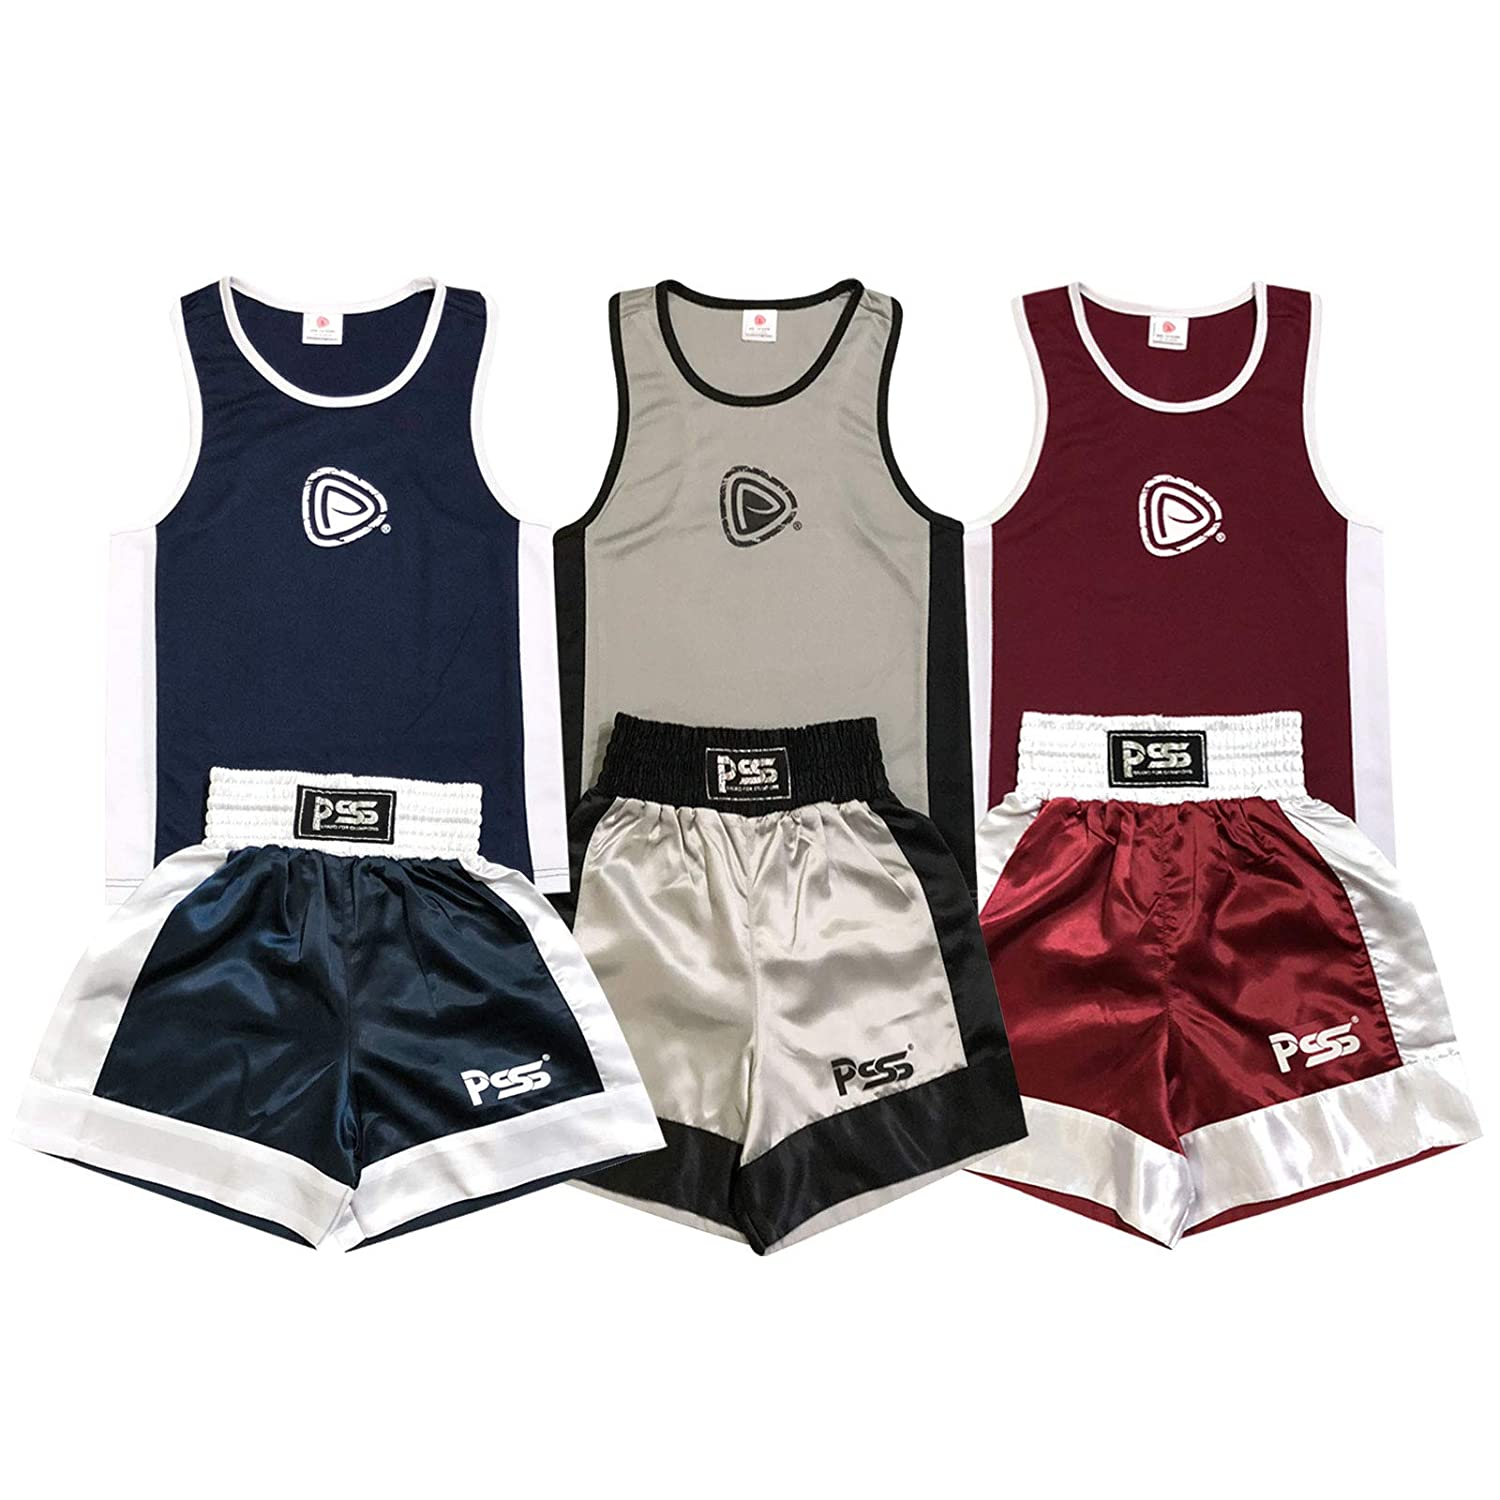 RED TOP /& SHORT NEW KIDS BOXING UNIFORM 2 PICES SET 03 TILL 14 YEAR OLD KIDS